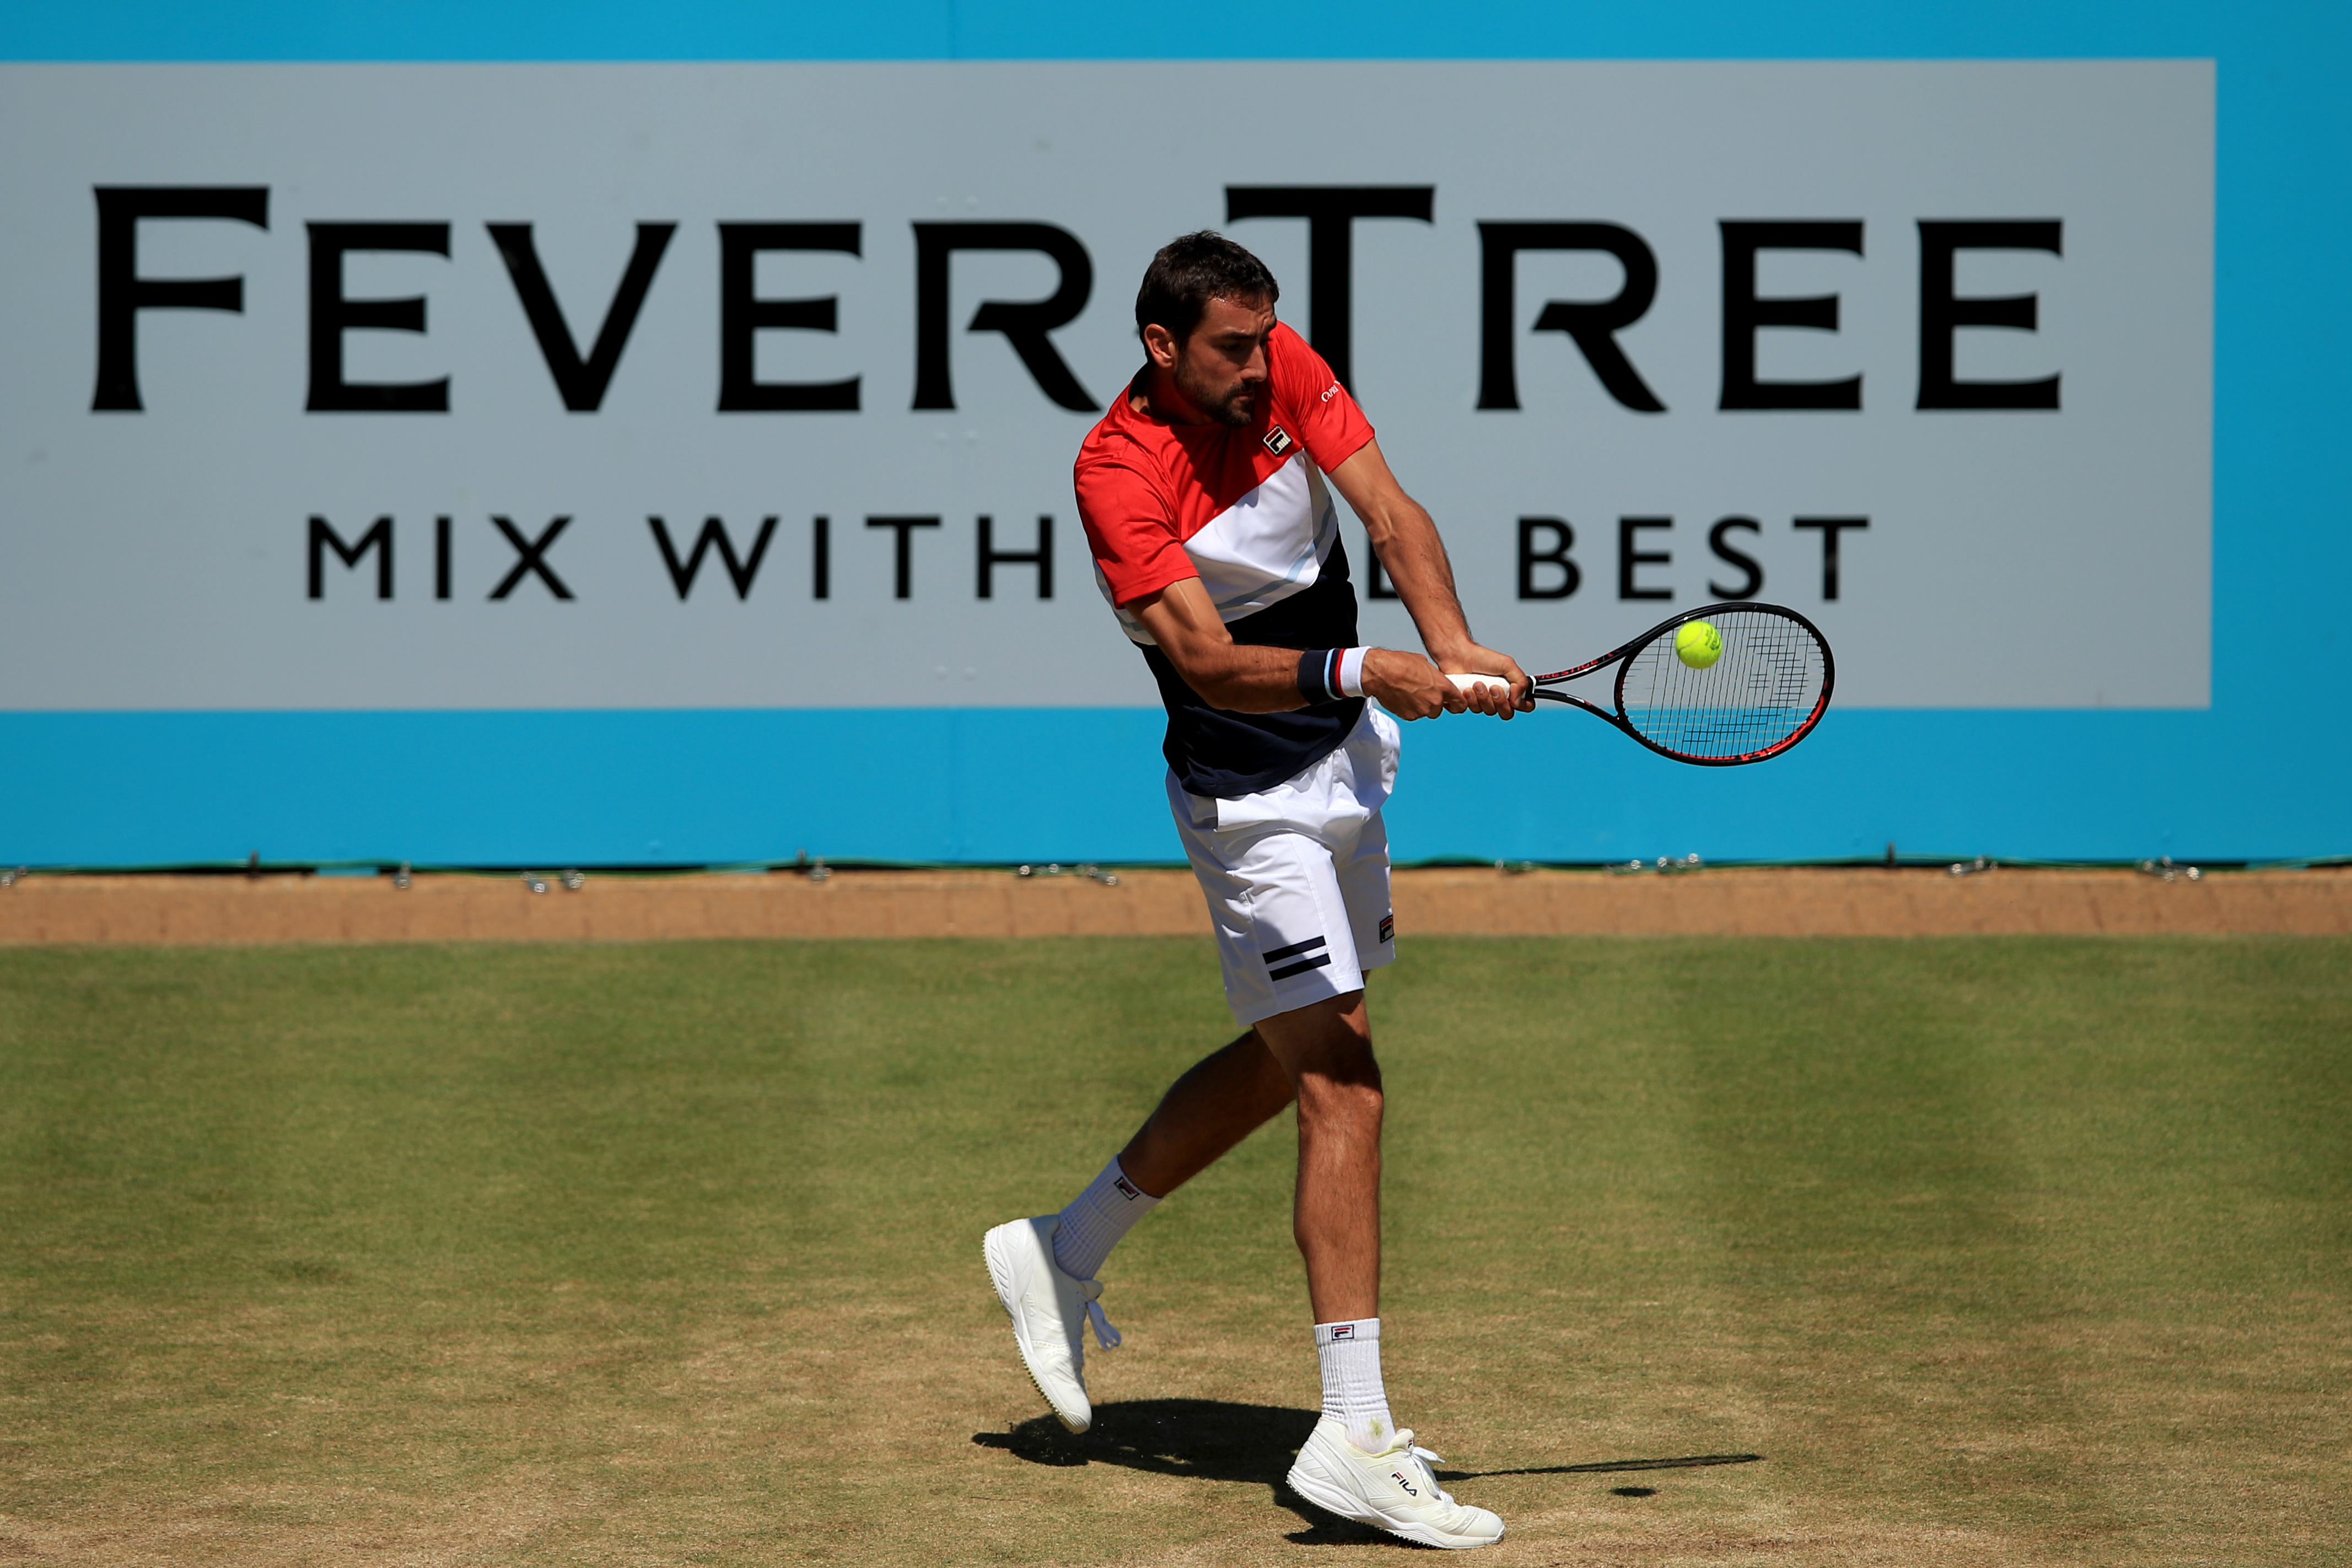 Marin Cilic striking a backhand in the quarter-final match against Sam Querrey